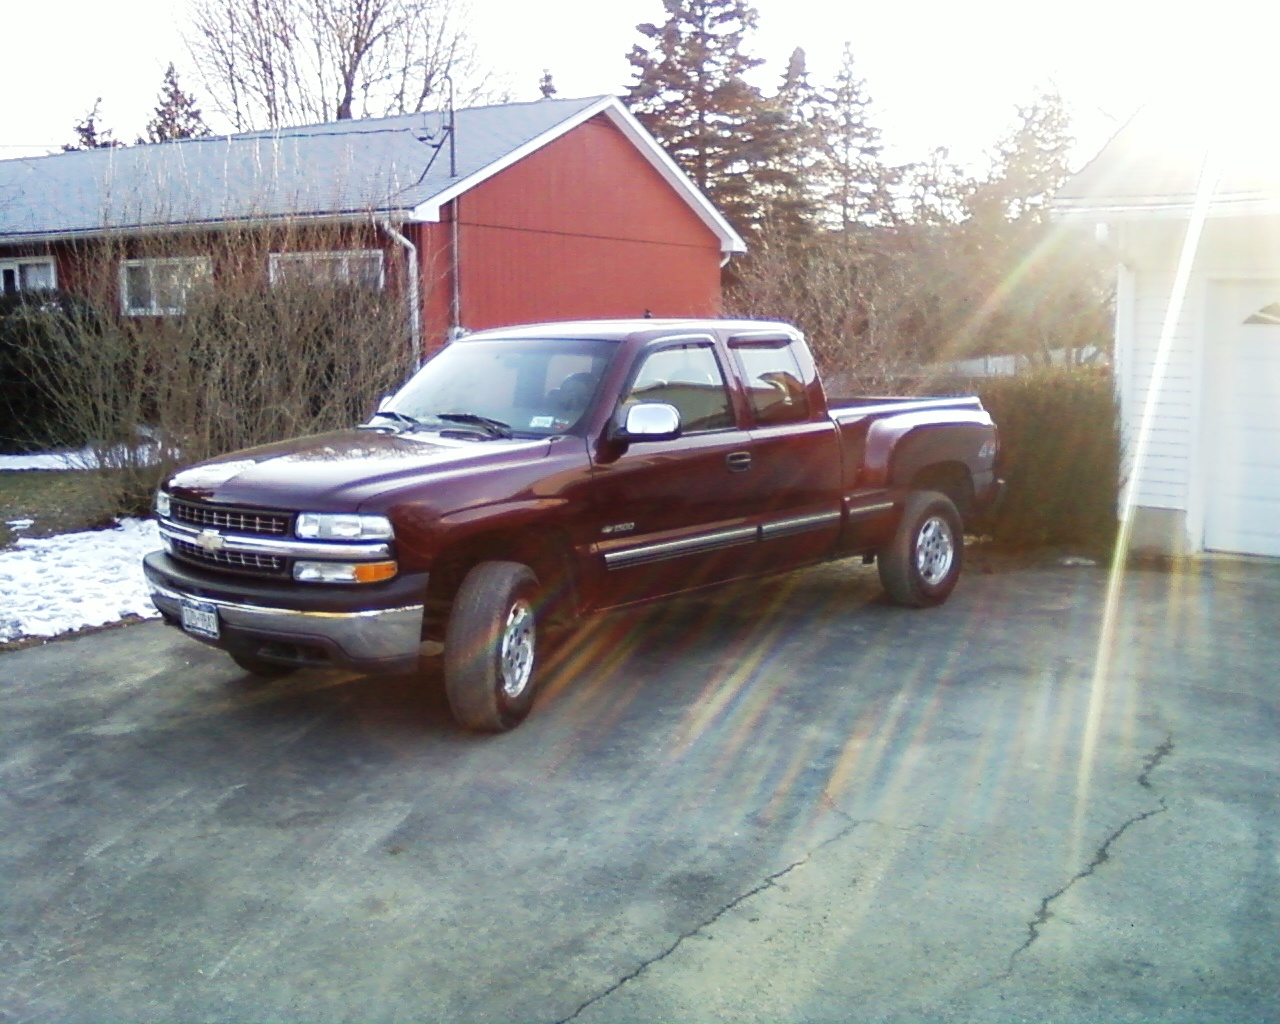 2000 Chevy Tahoe Limited Craigslist | Autos Post